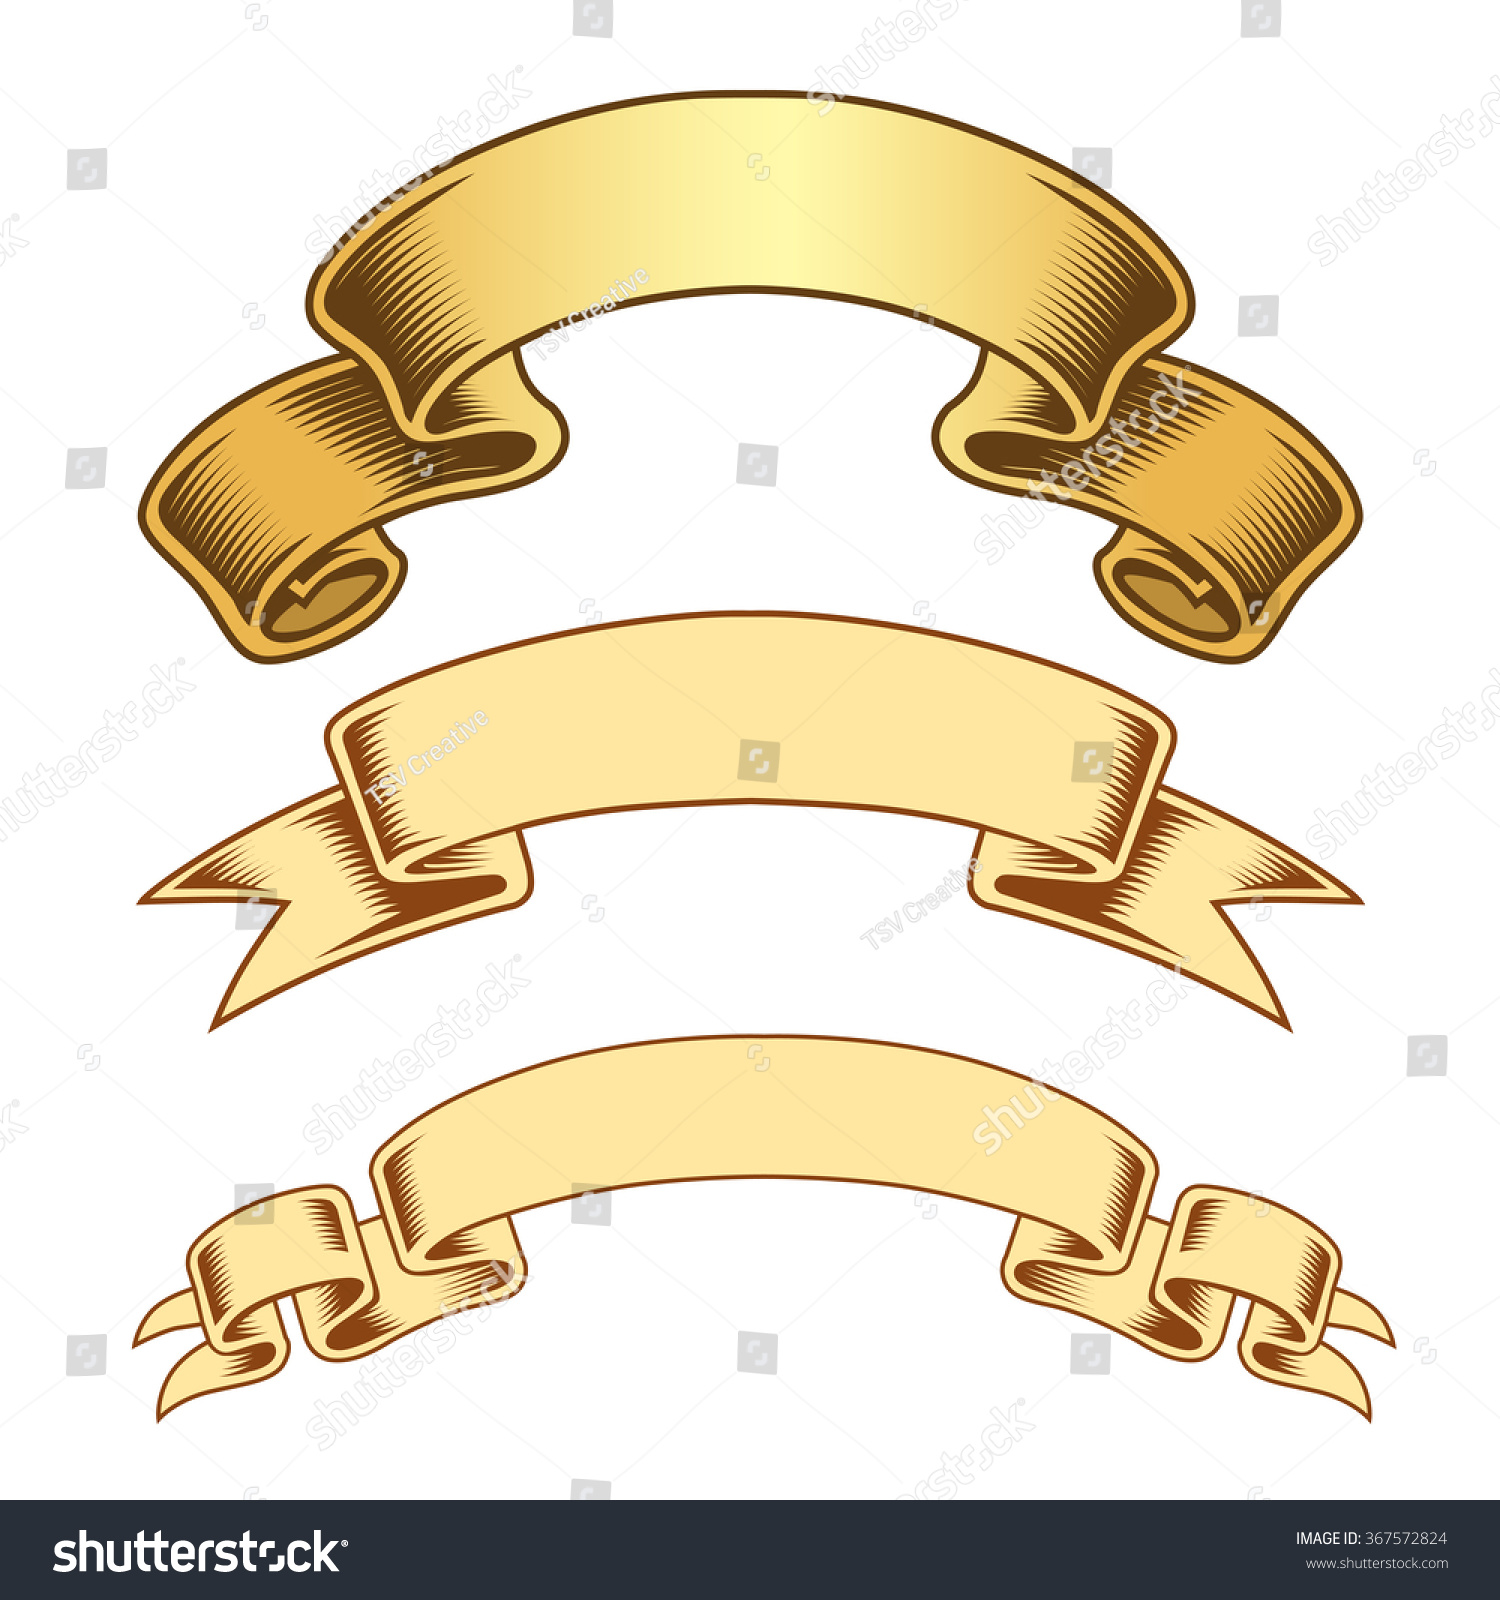 Antique Scroll Vector: Vintage Scroll Engraved Banner Vector 스톡 벡터 367572824